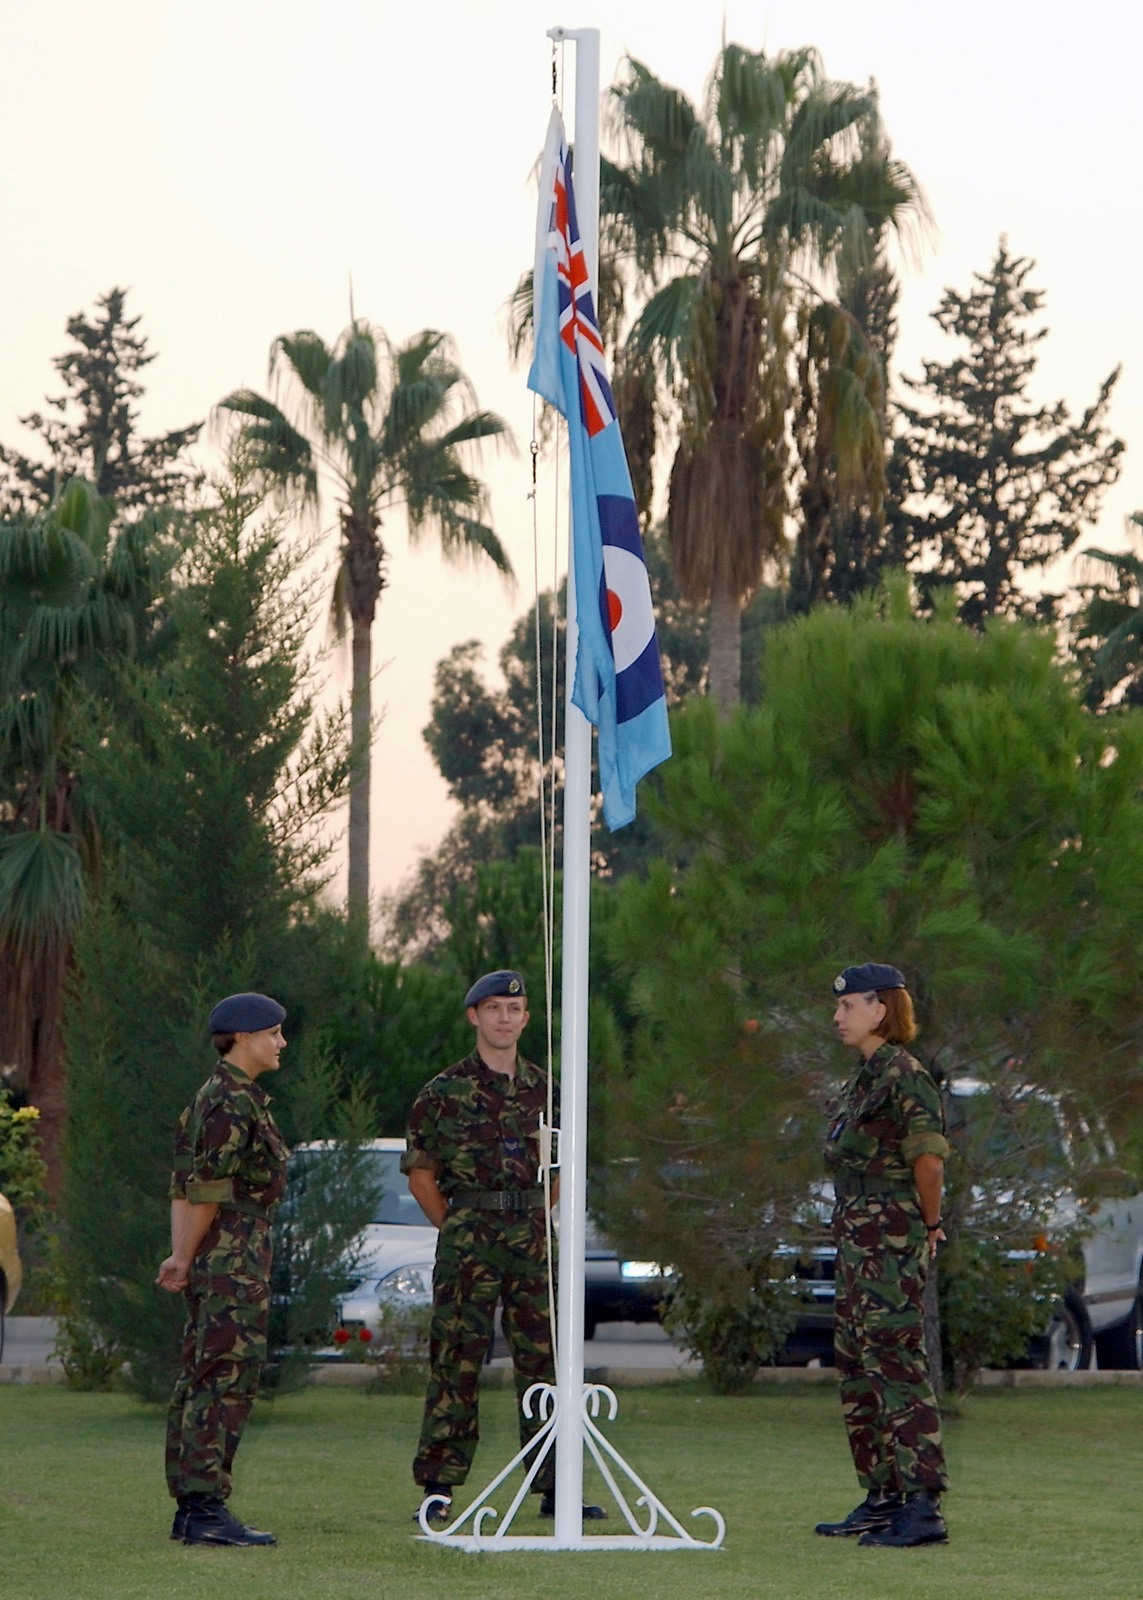 Royal Air Force (RAF), left to right, SENIOR Aircraft Woman Marie Ponton, Corporal (CPL) Ian Barrie and CPL Helen Penny are the Honor Guard for the ceremonial portion of Battle of Britain Observance held at Incirlik Air Base (AB), Turkey, during Operation NORTHERN WATCH